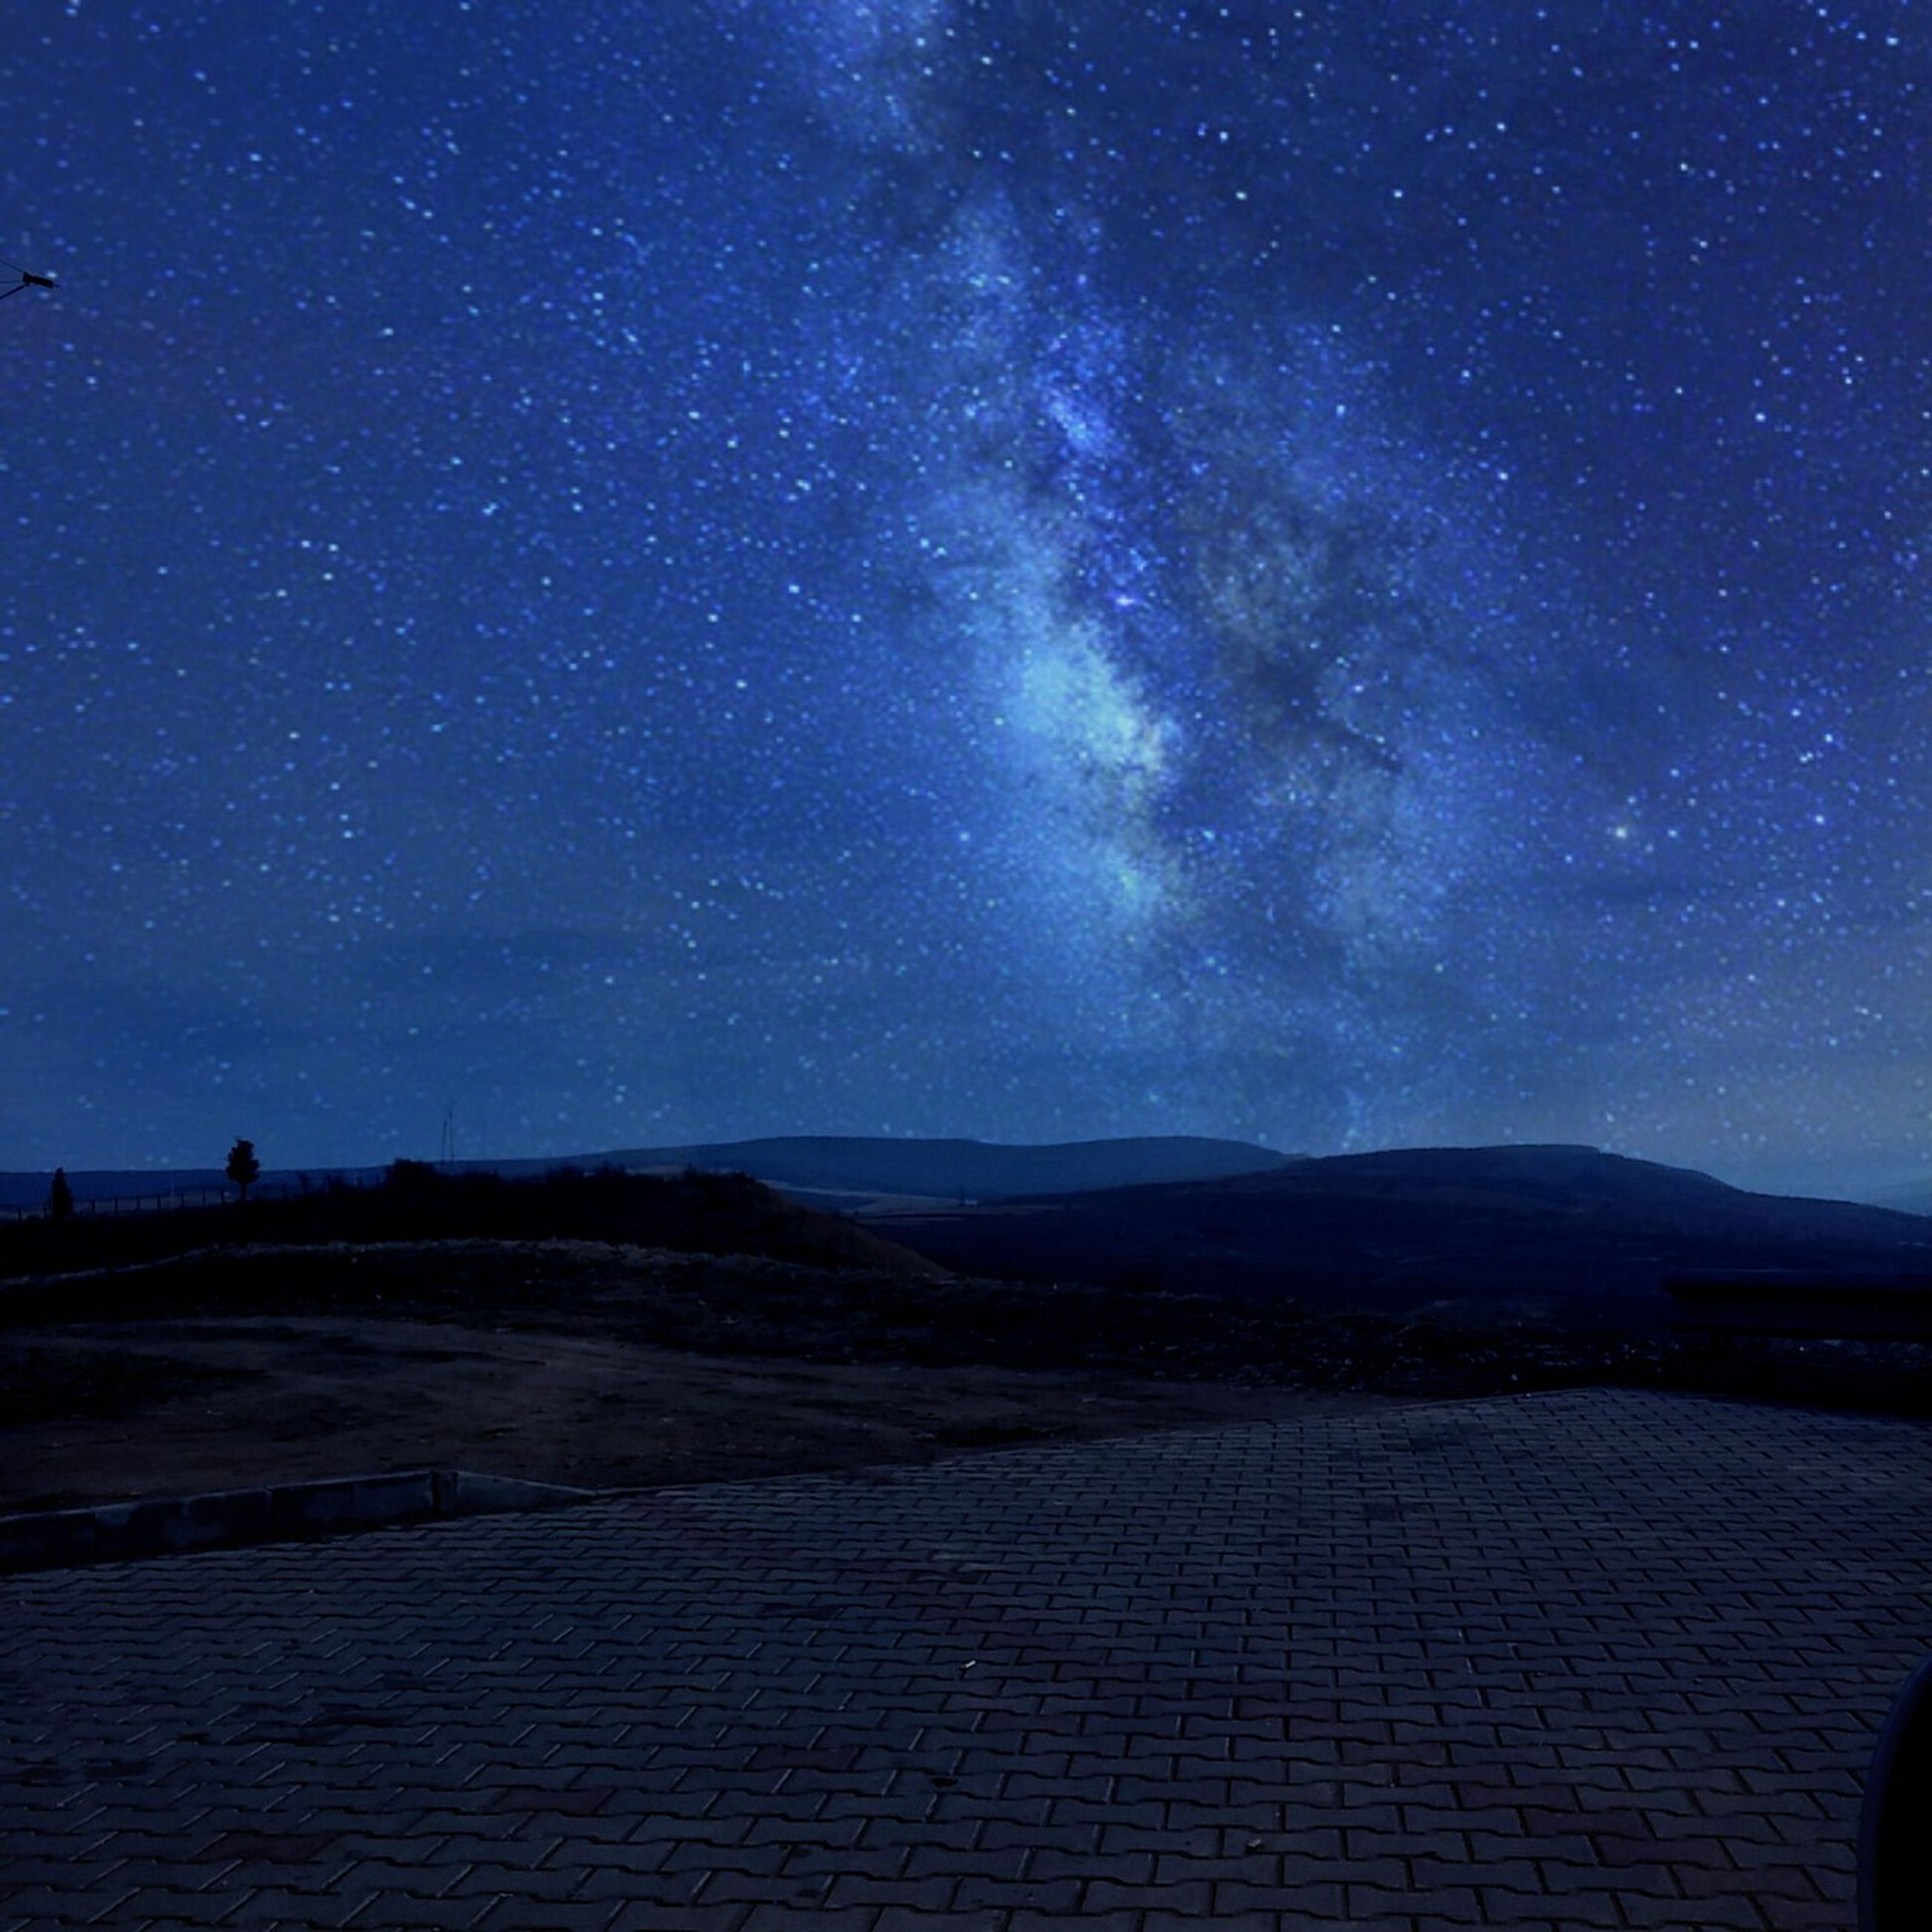 night, tranquil scene, sky, tranquility, star - space, scenics, beauty in nature, star field, landscape, astronomy, blue, nature, infinity, dark, galaxy, idyllic, road, star, illuminated, outdoors